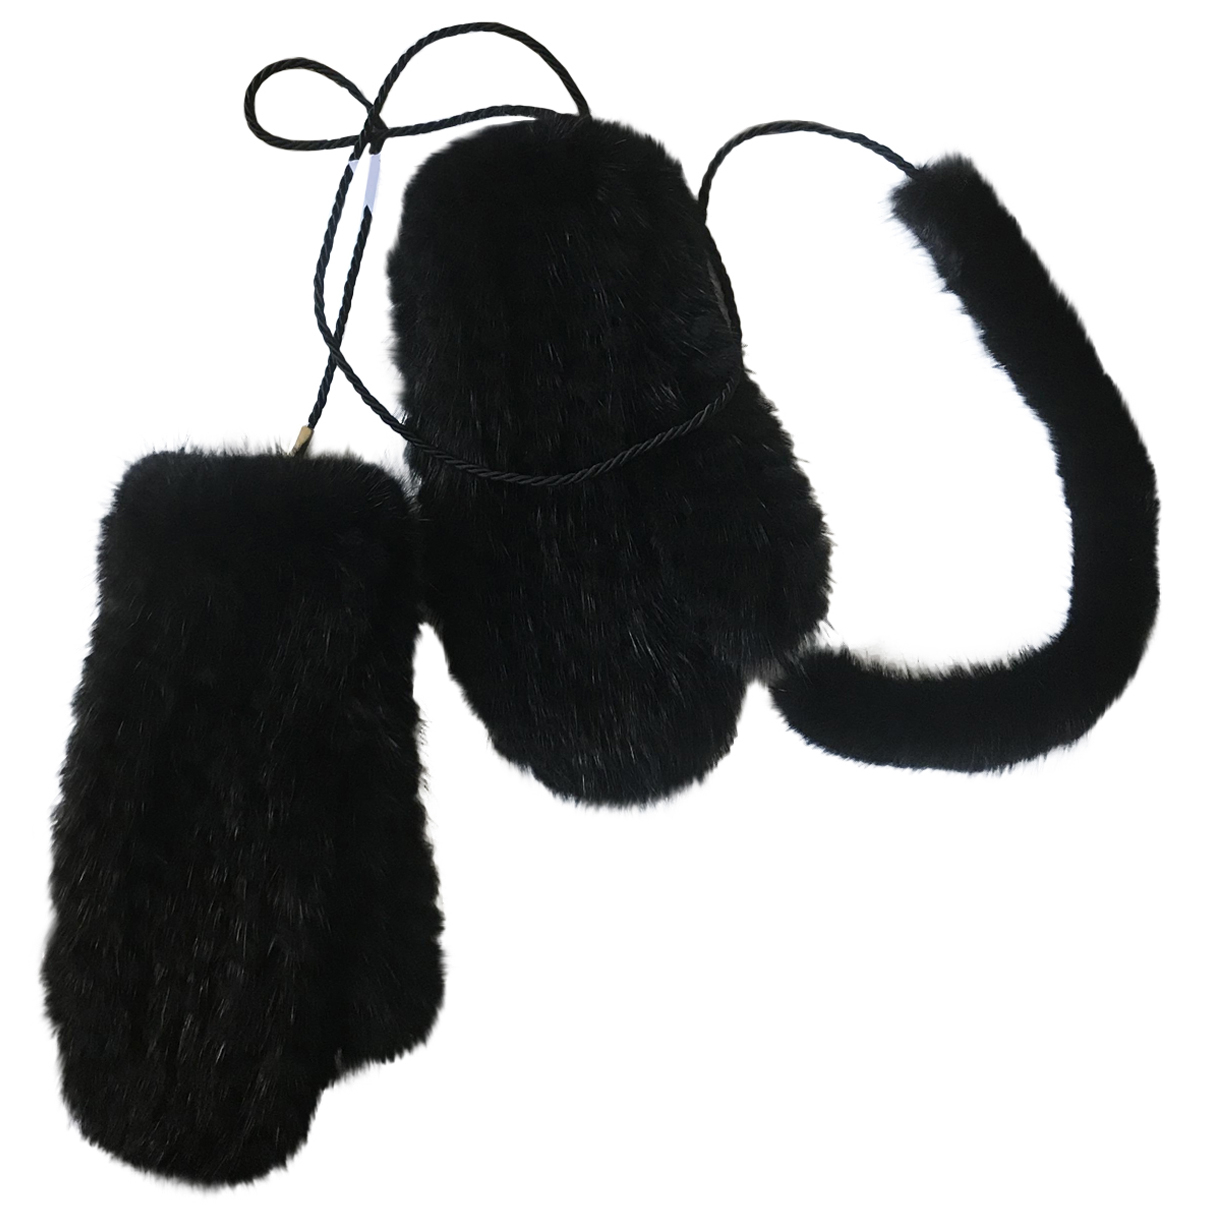 Max Mara N Black Mink Gloves for Women S International